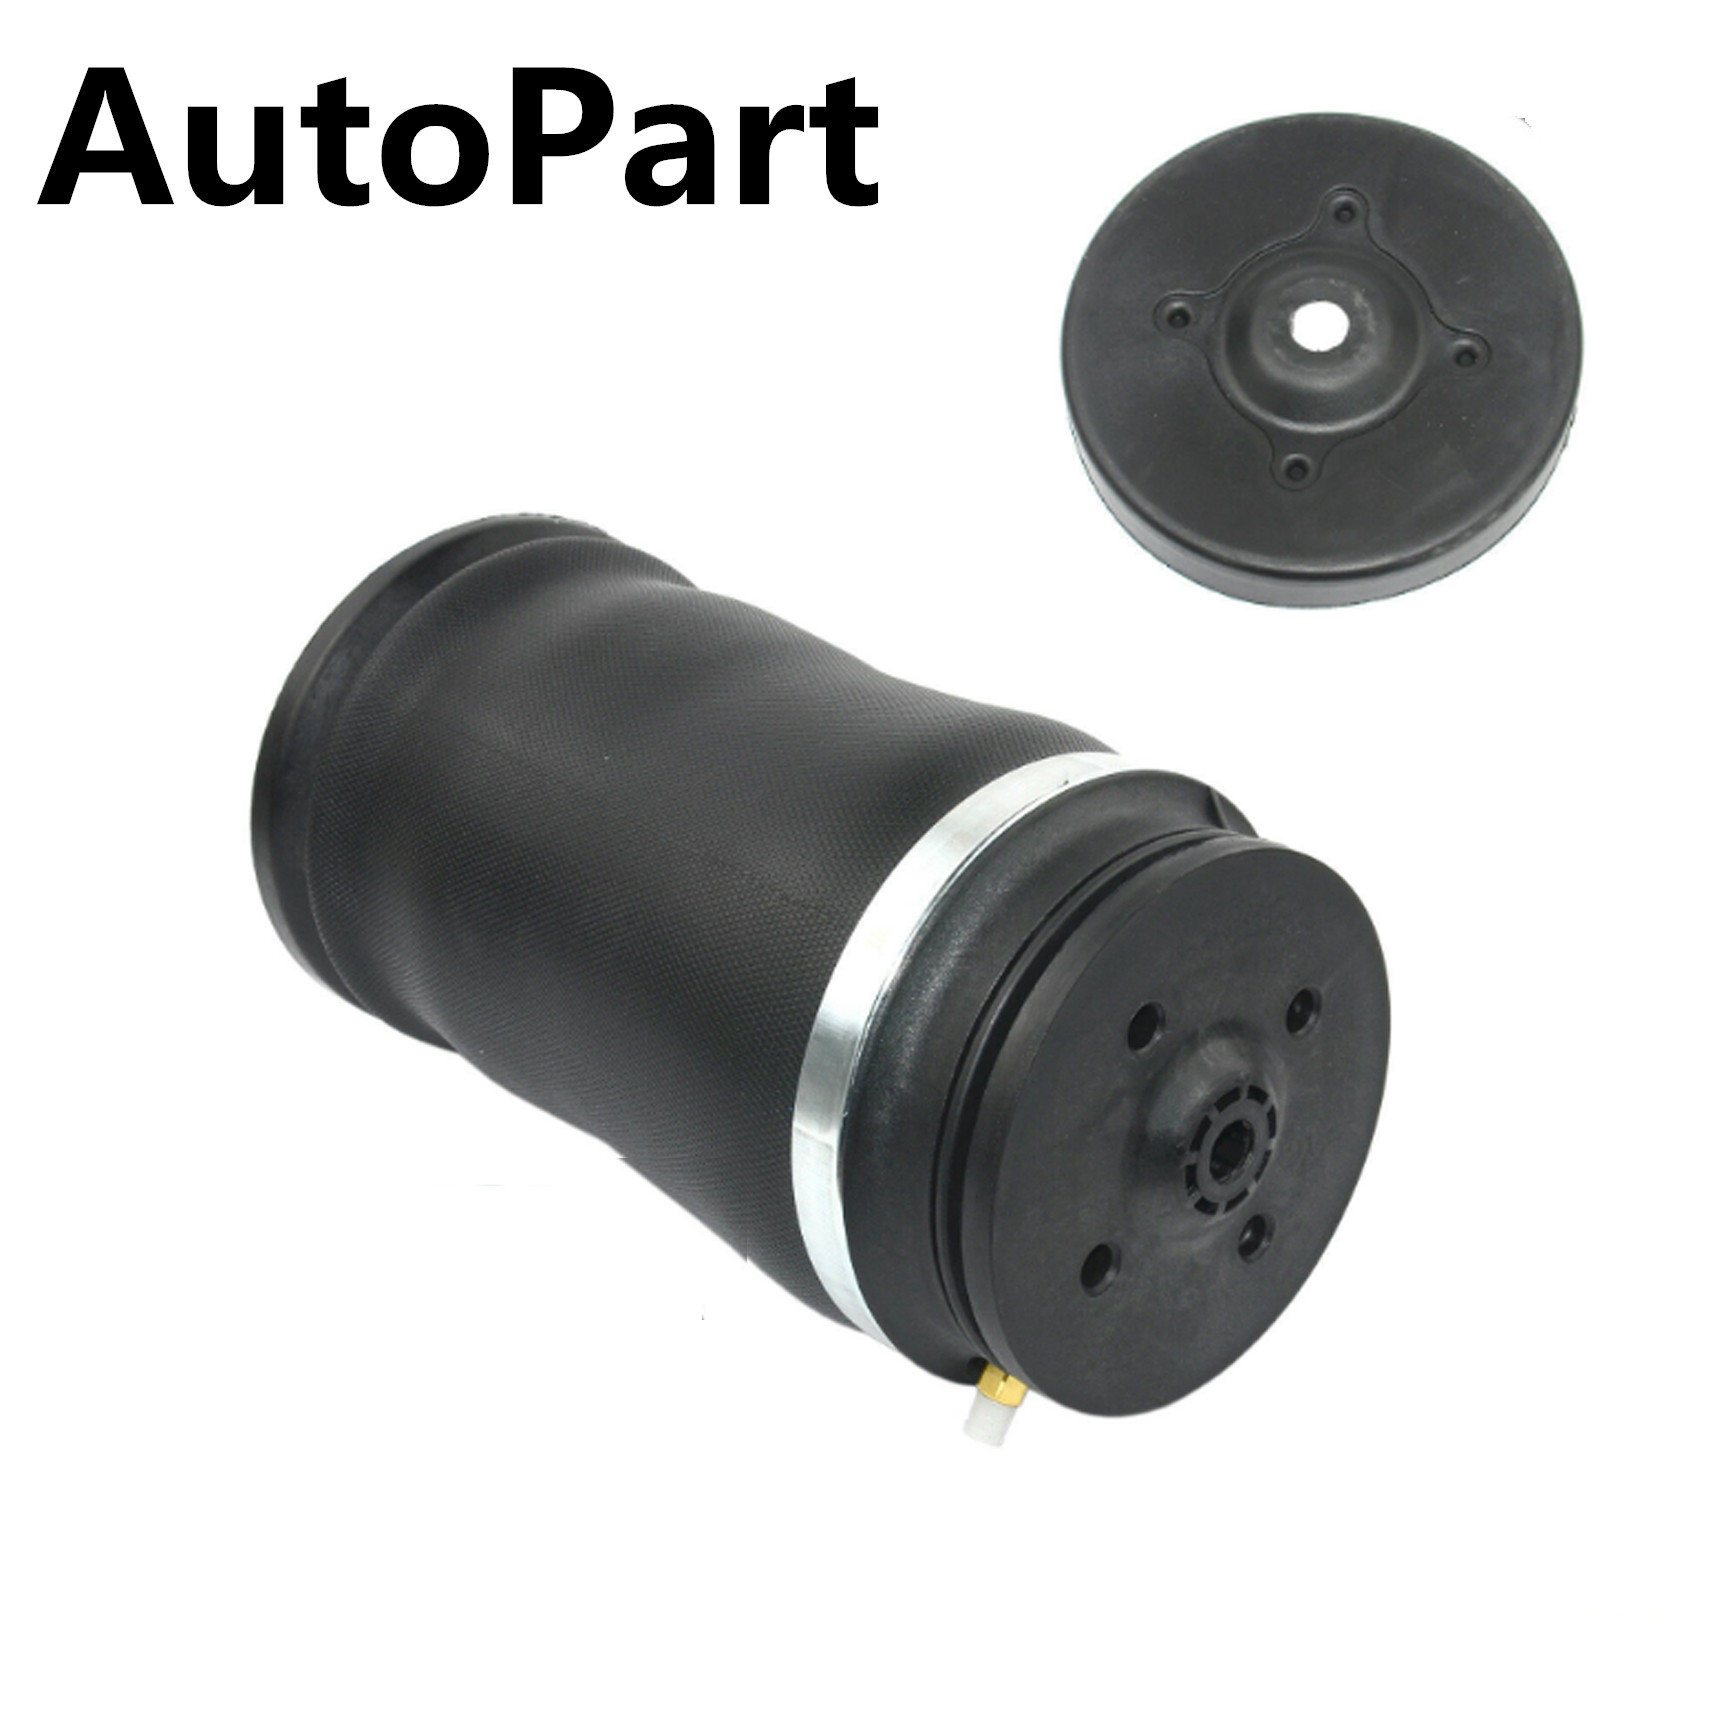 1643200325 Pneumatic Suspension Post-Shock Airbag For Mercedes Benz W164 <font><b>X164</b></font> GL350 GL450 <font><b>GL</b></font> Class Rear Air Bag 1643201025 image